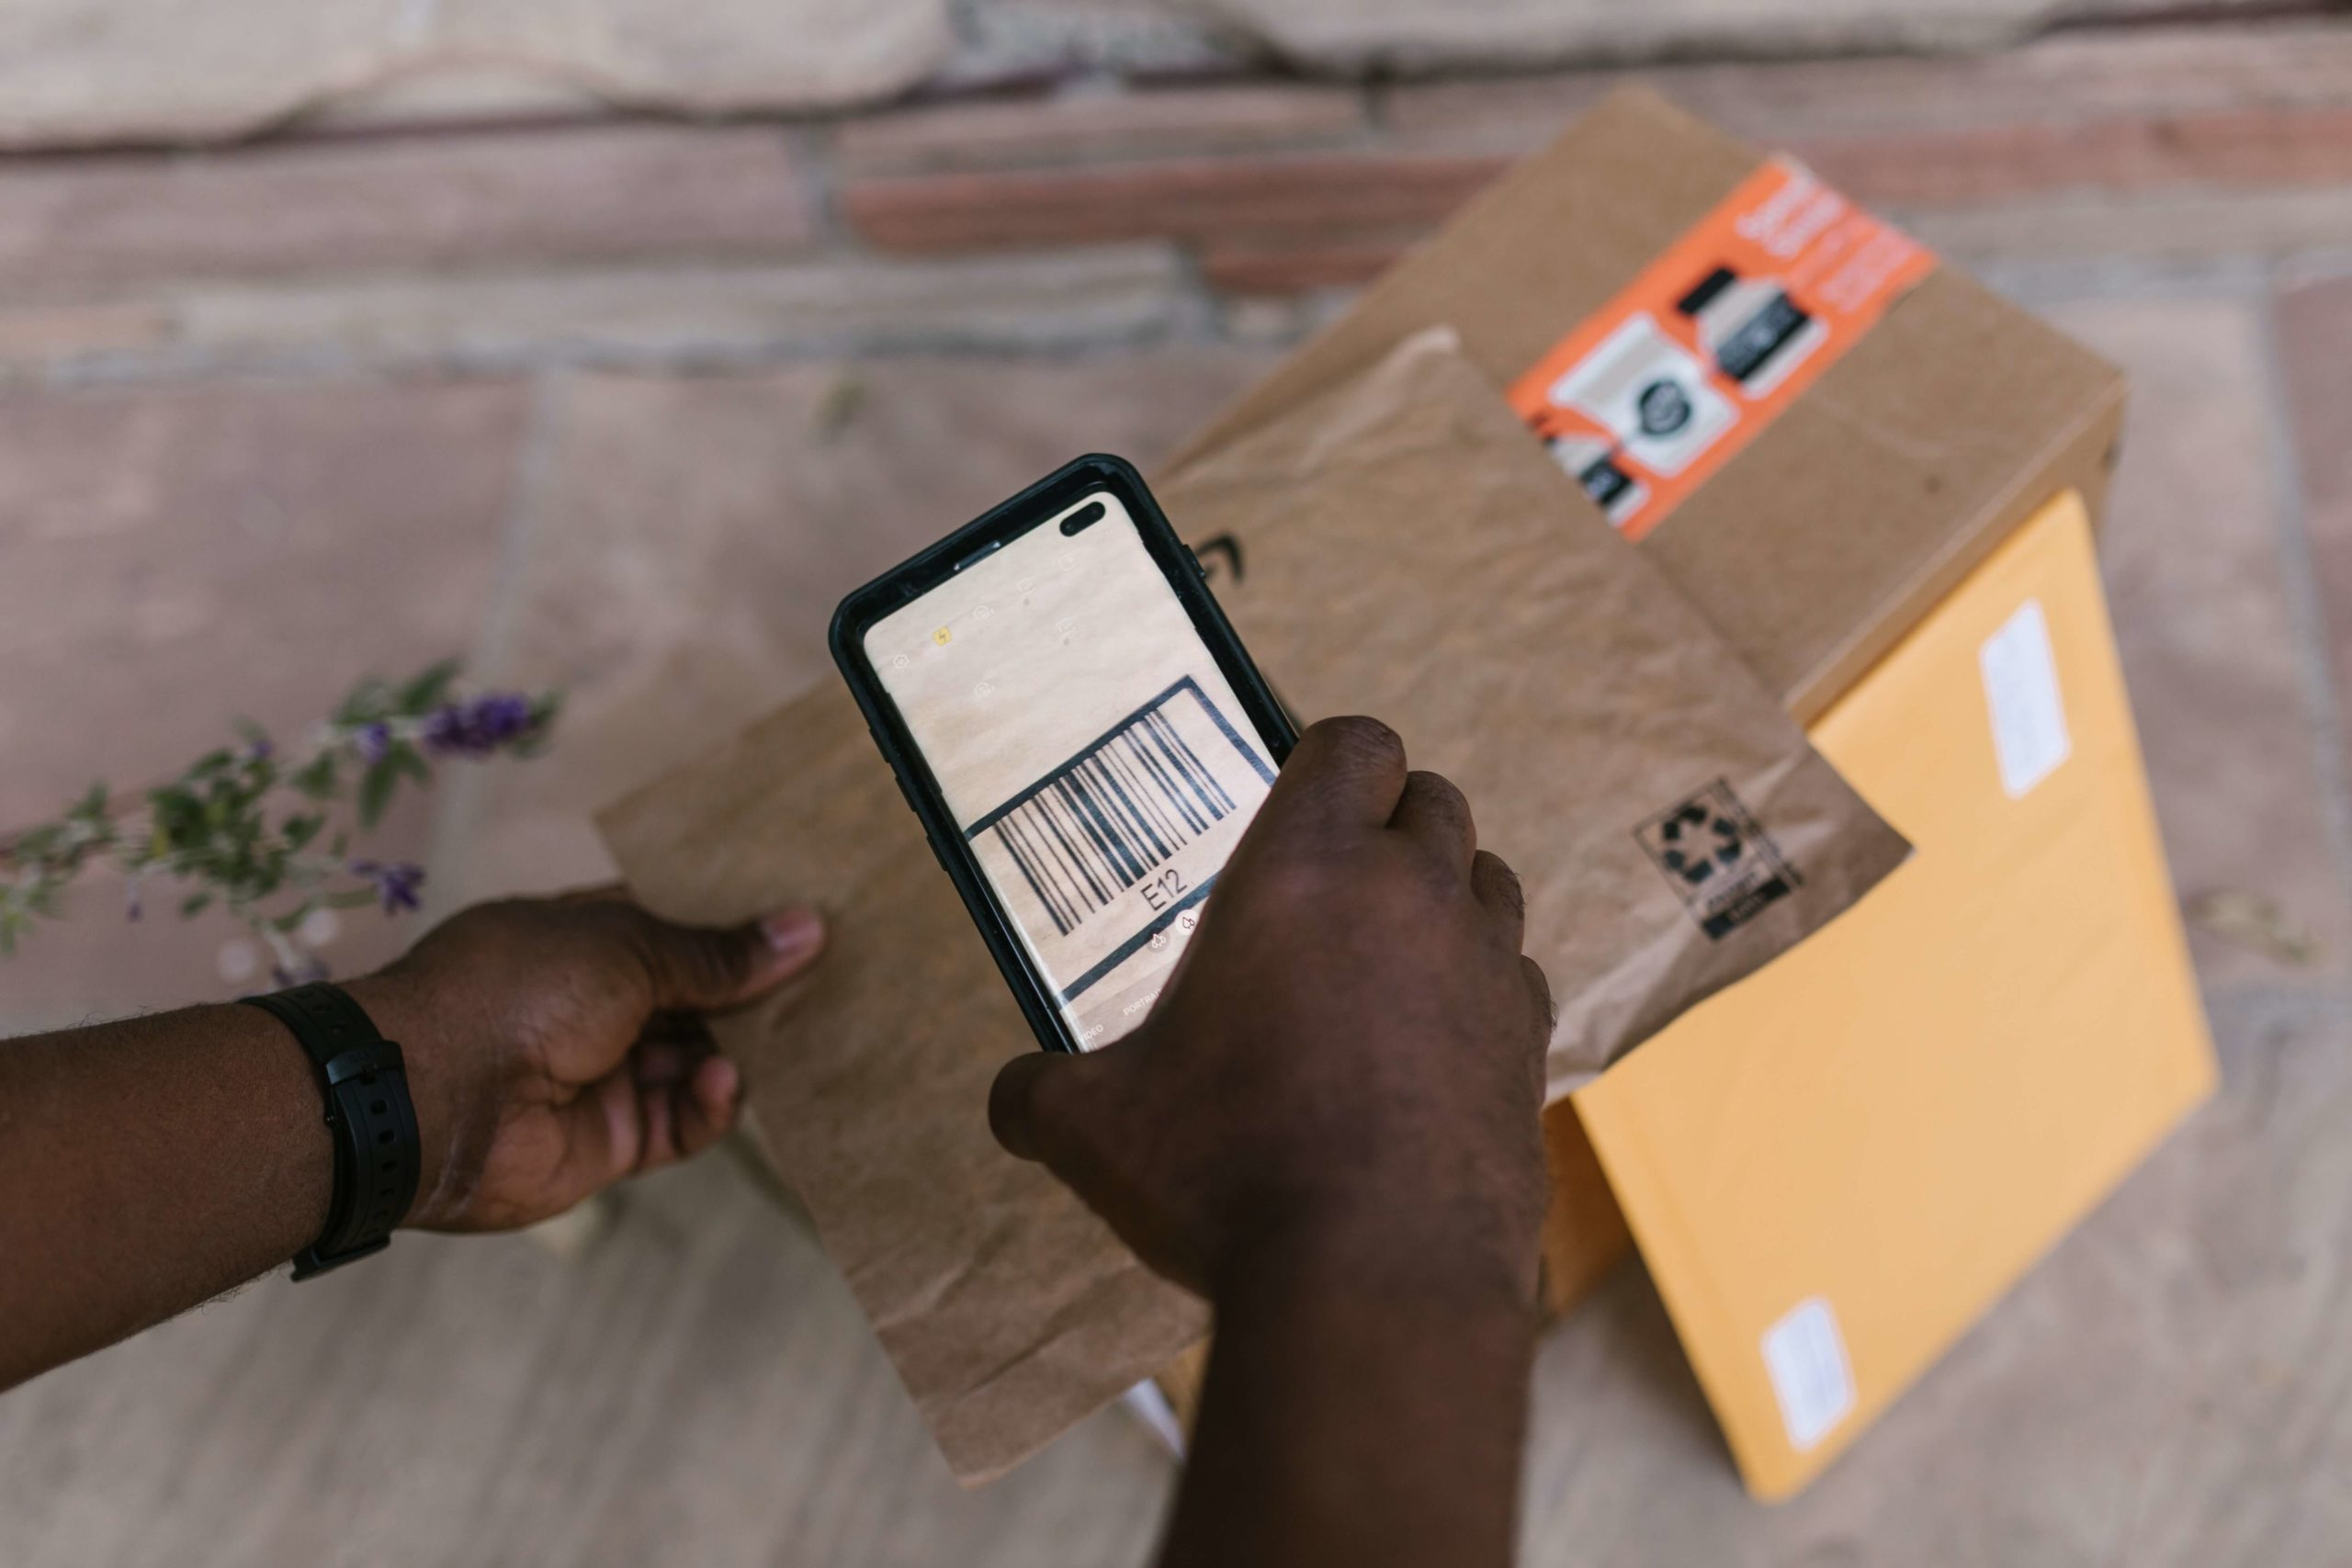 Scanning the barcode on the parcel via the phone